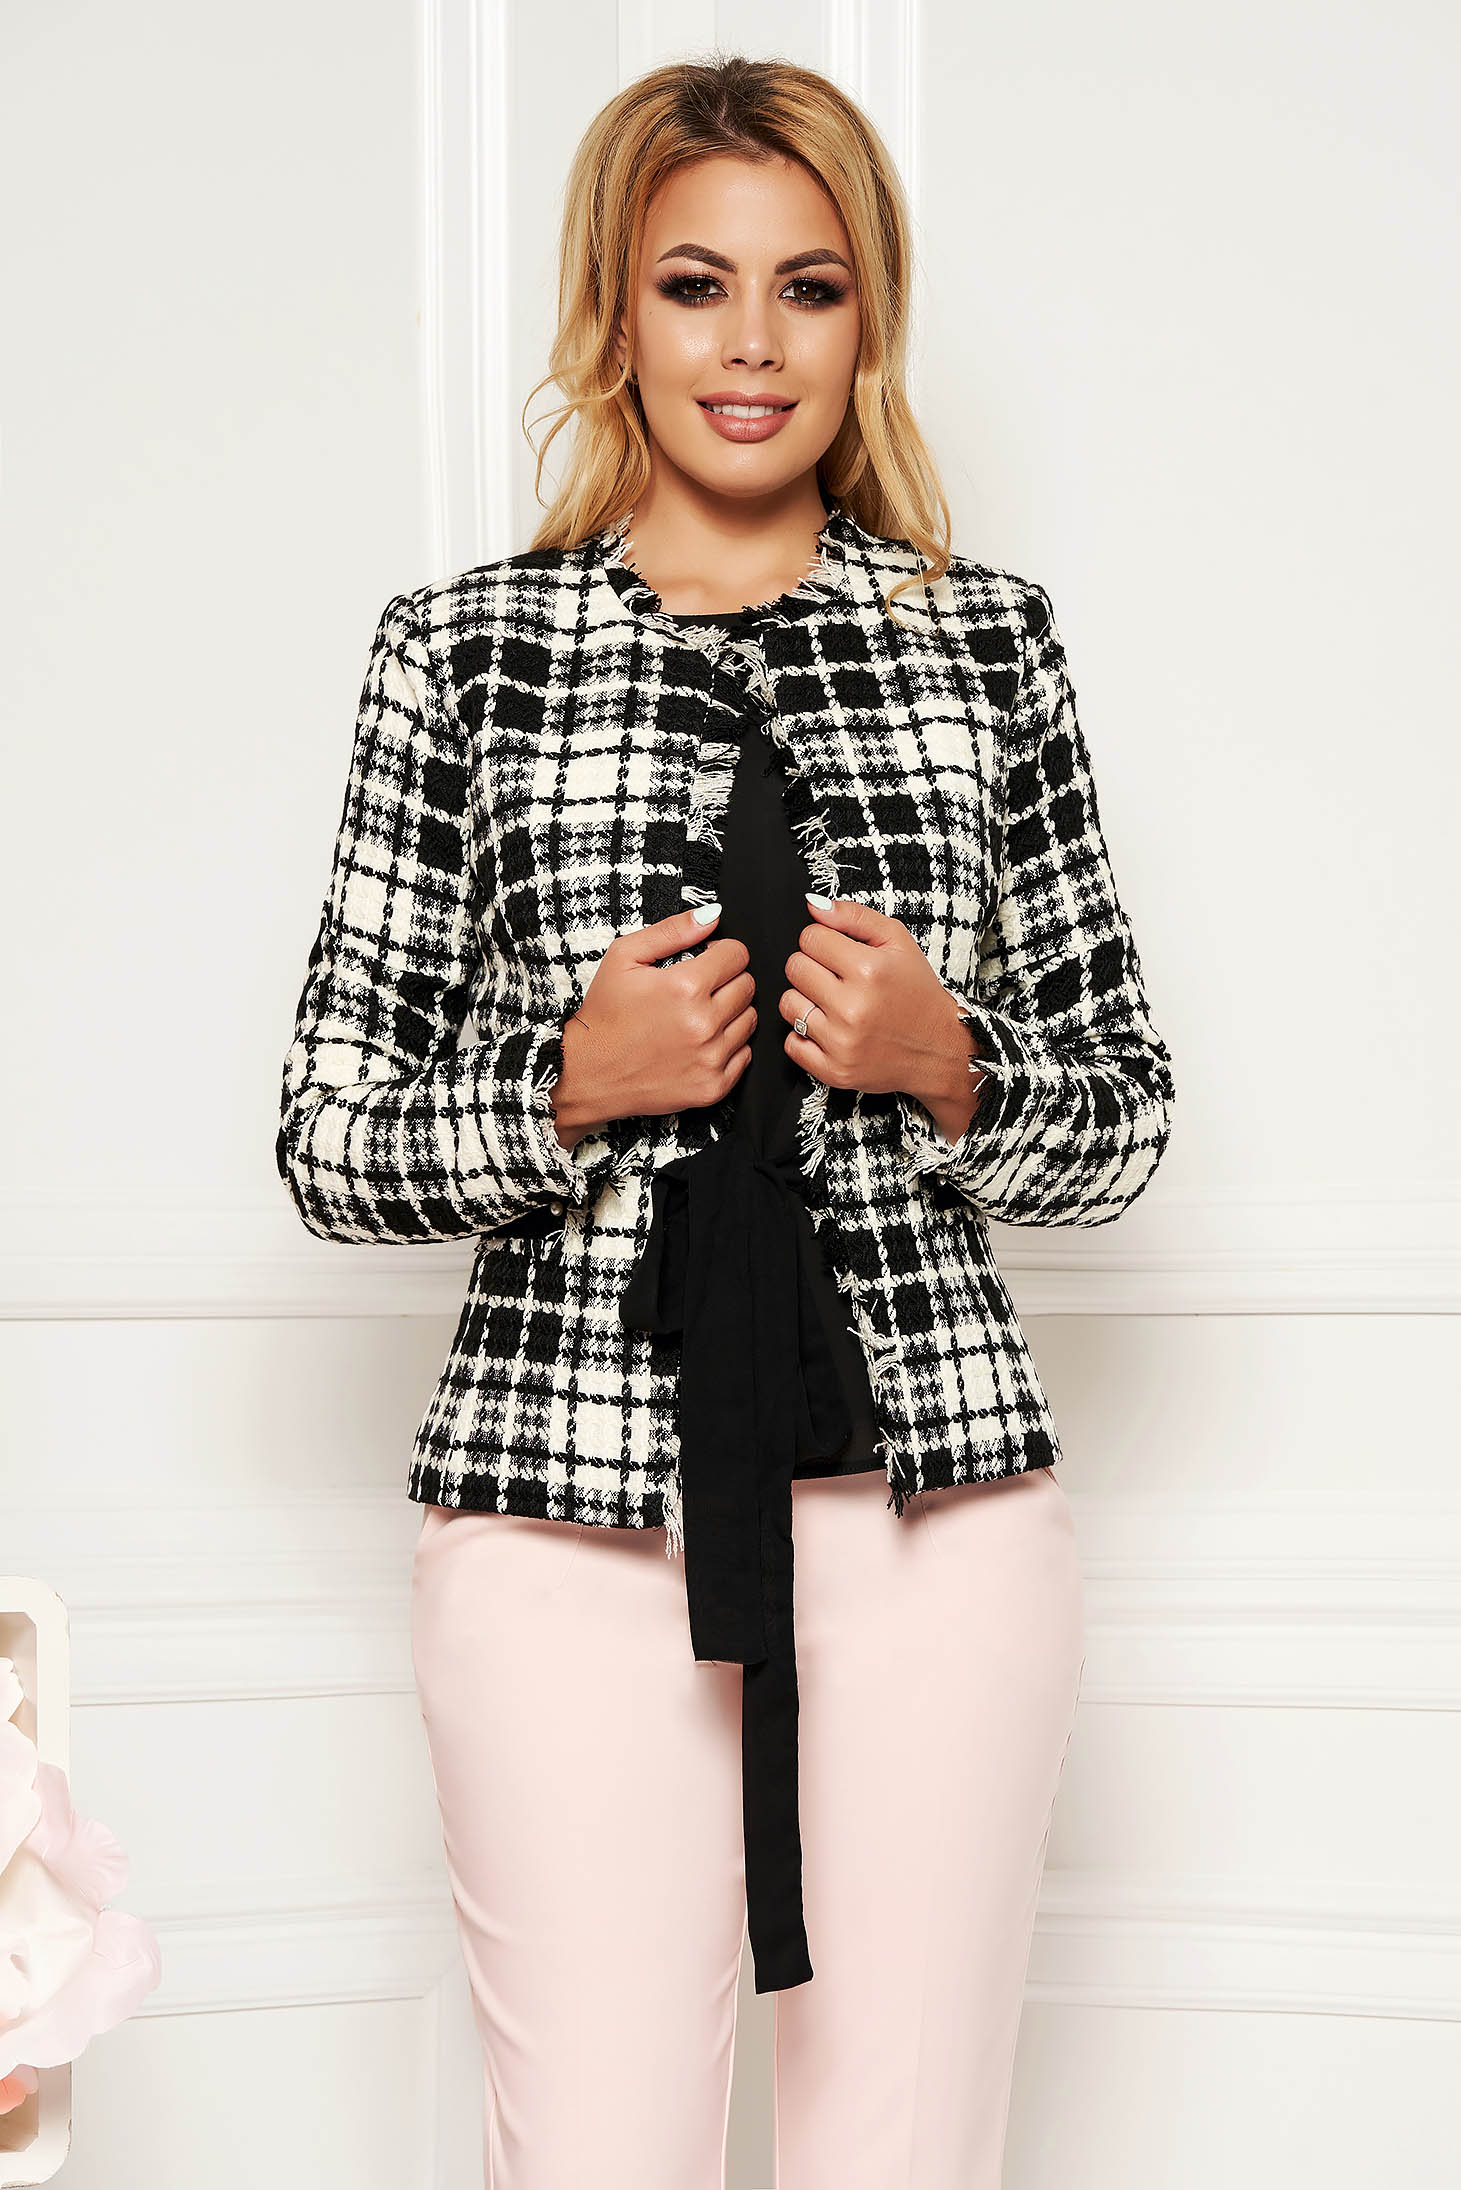 Elegant tented long sleeve jacket with small beads embellished details arched cut plaid fabric